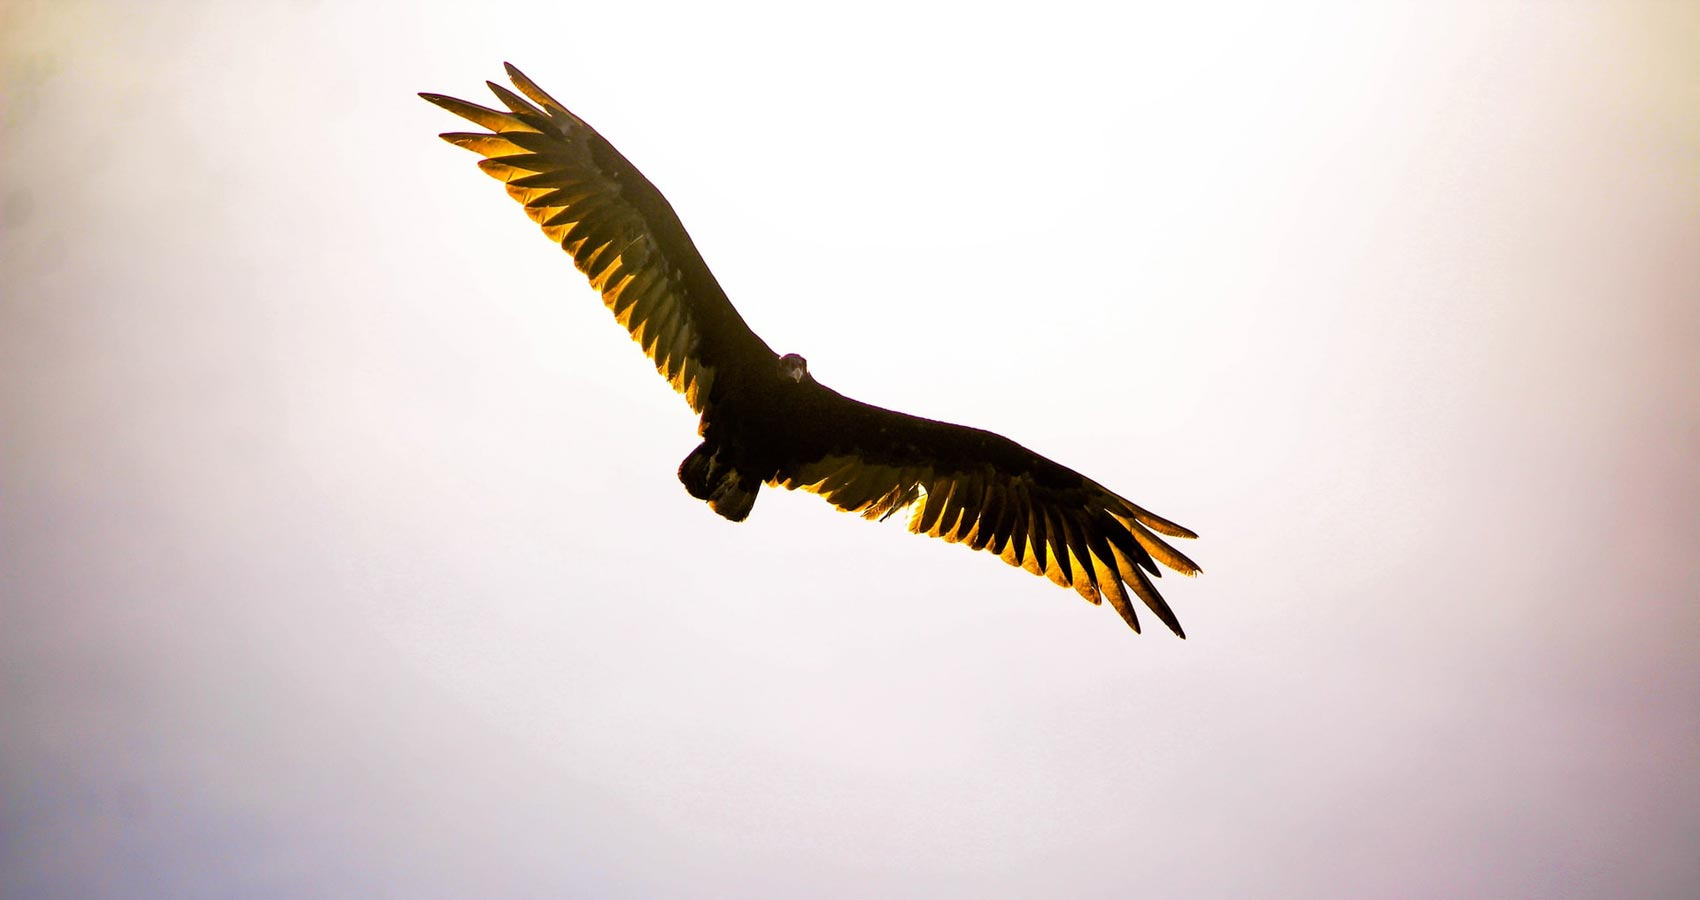 Calling All EAGLES, a poem by Fay Marmalich-Vietmeier at Spillwords.com